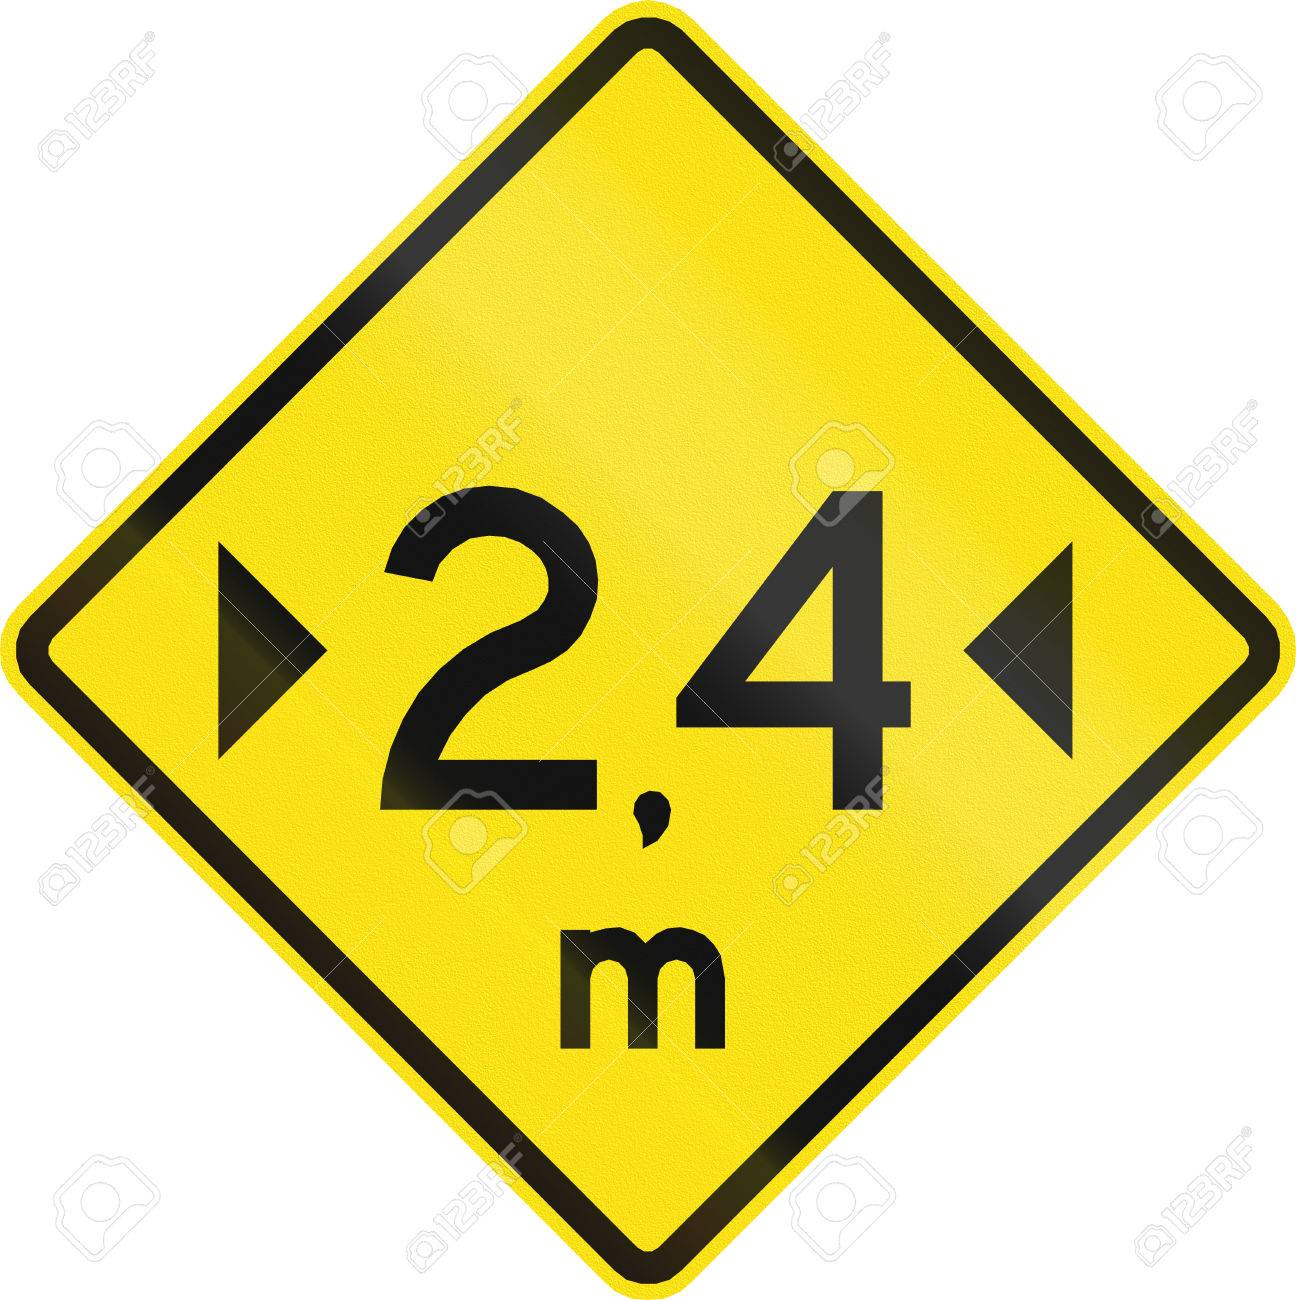 Warning Road Sign In Chile: Width Restriction Ahead (2,4 Meters.